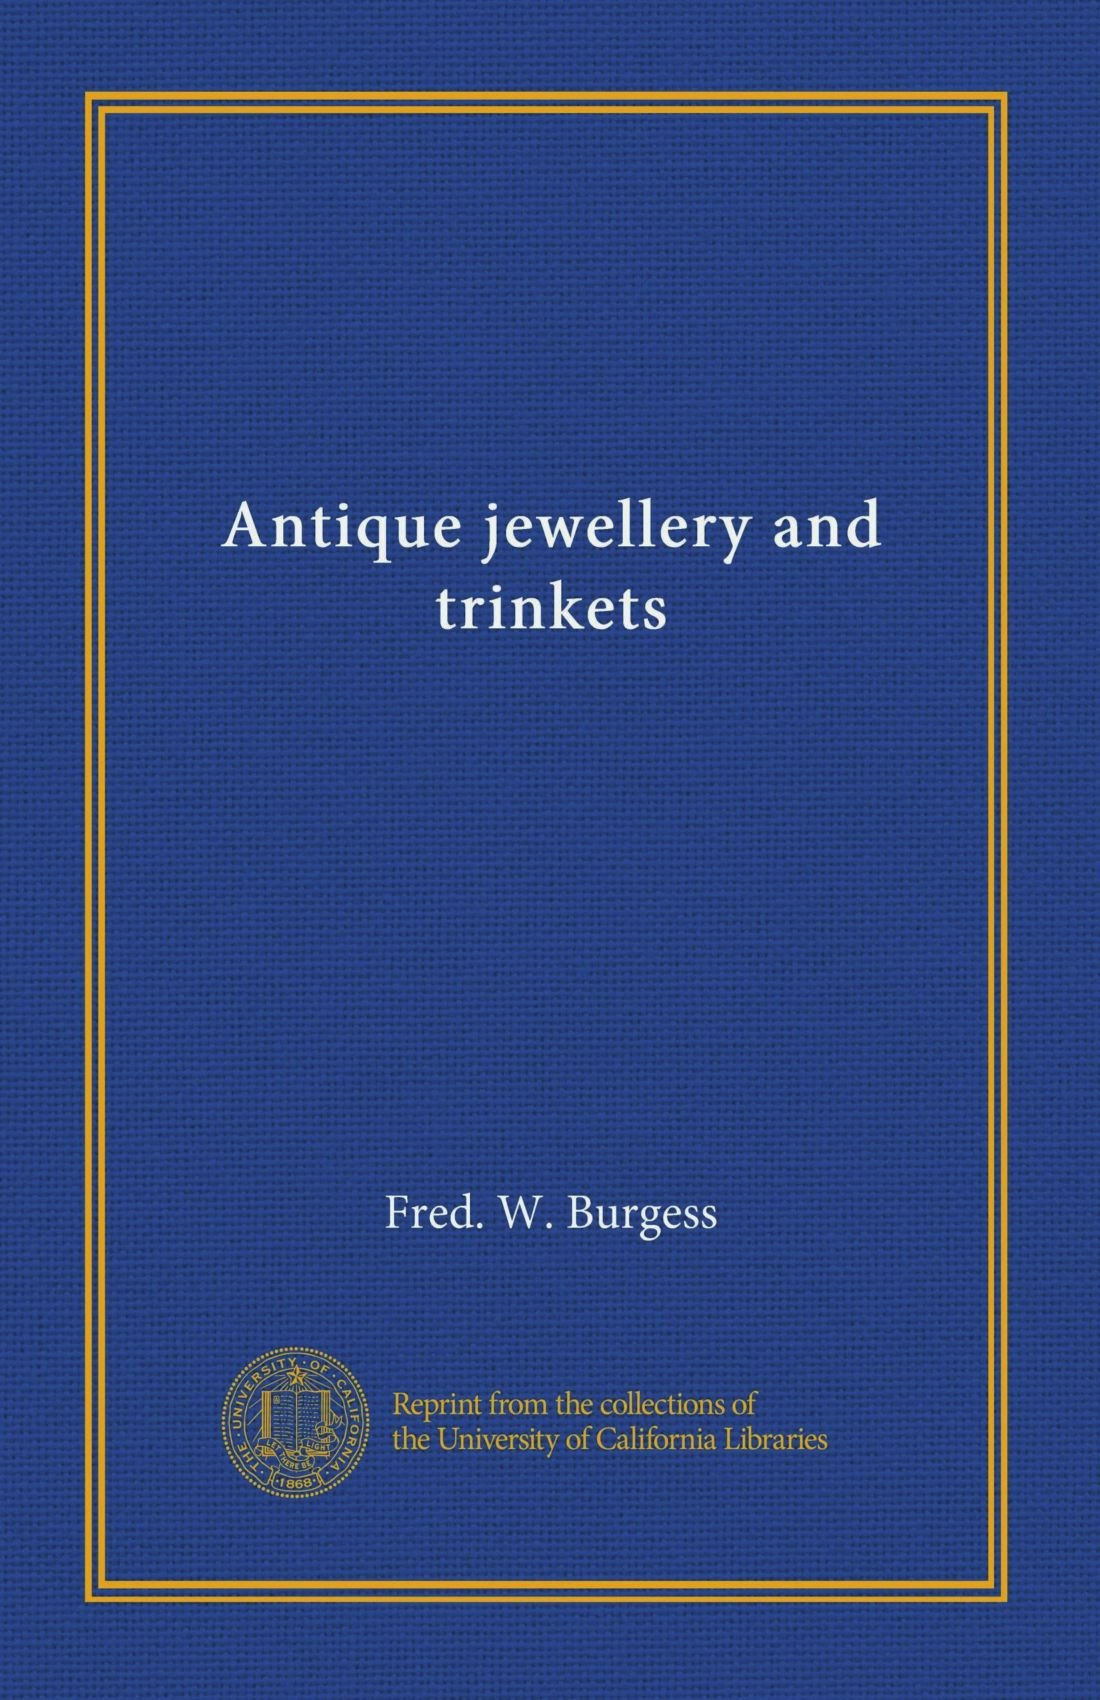 Antique jewellery and trinkets